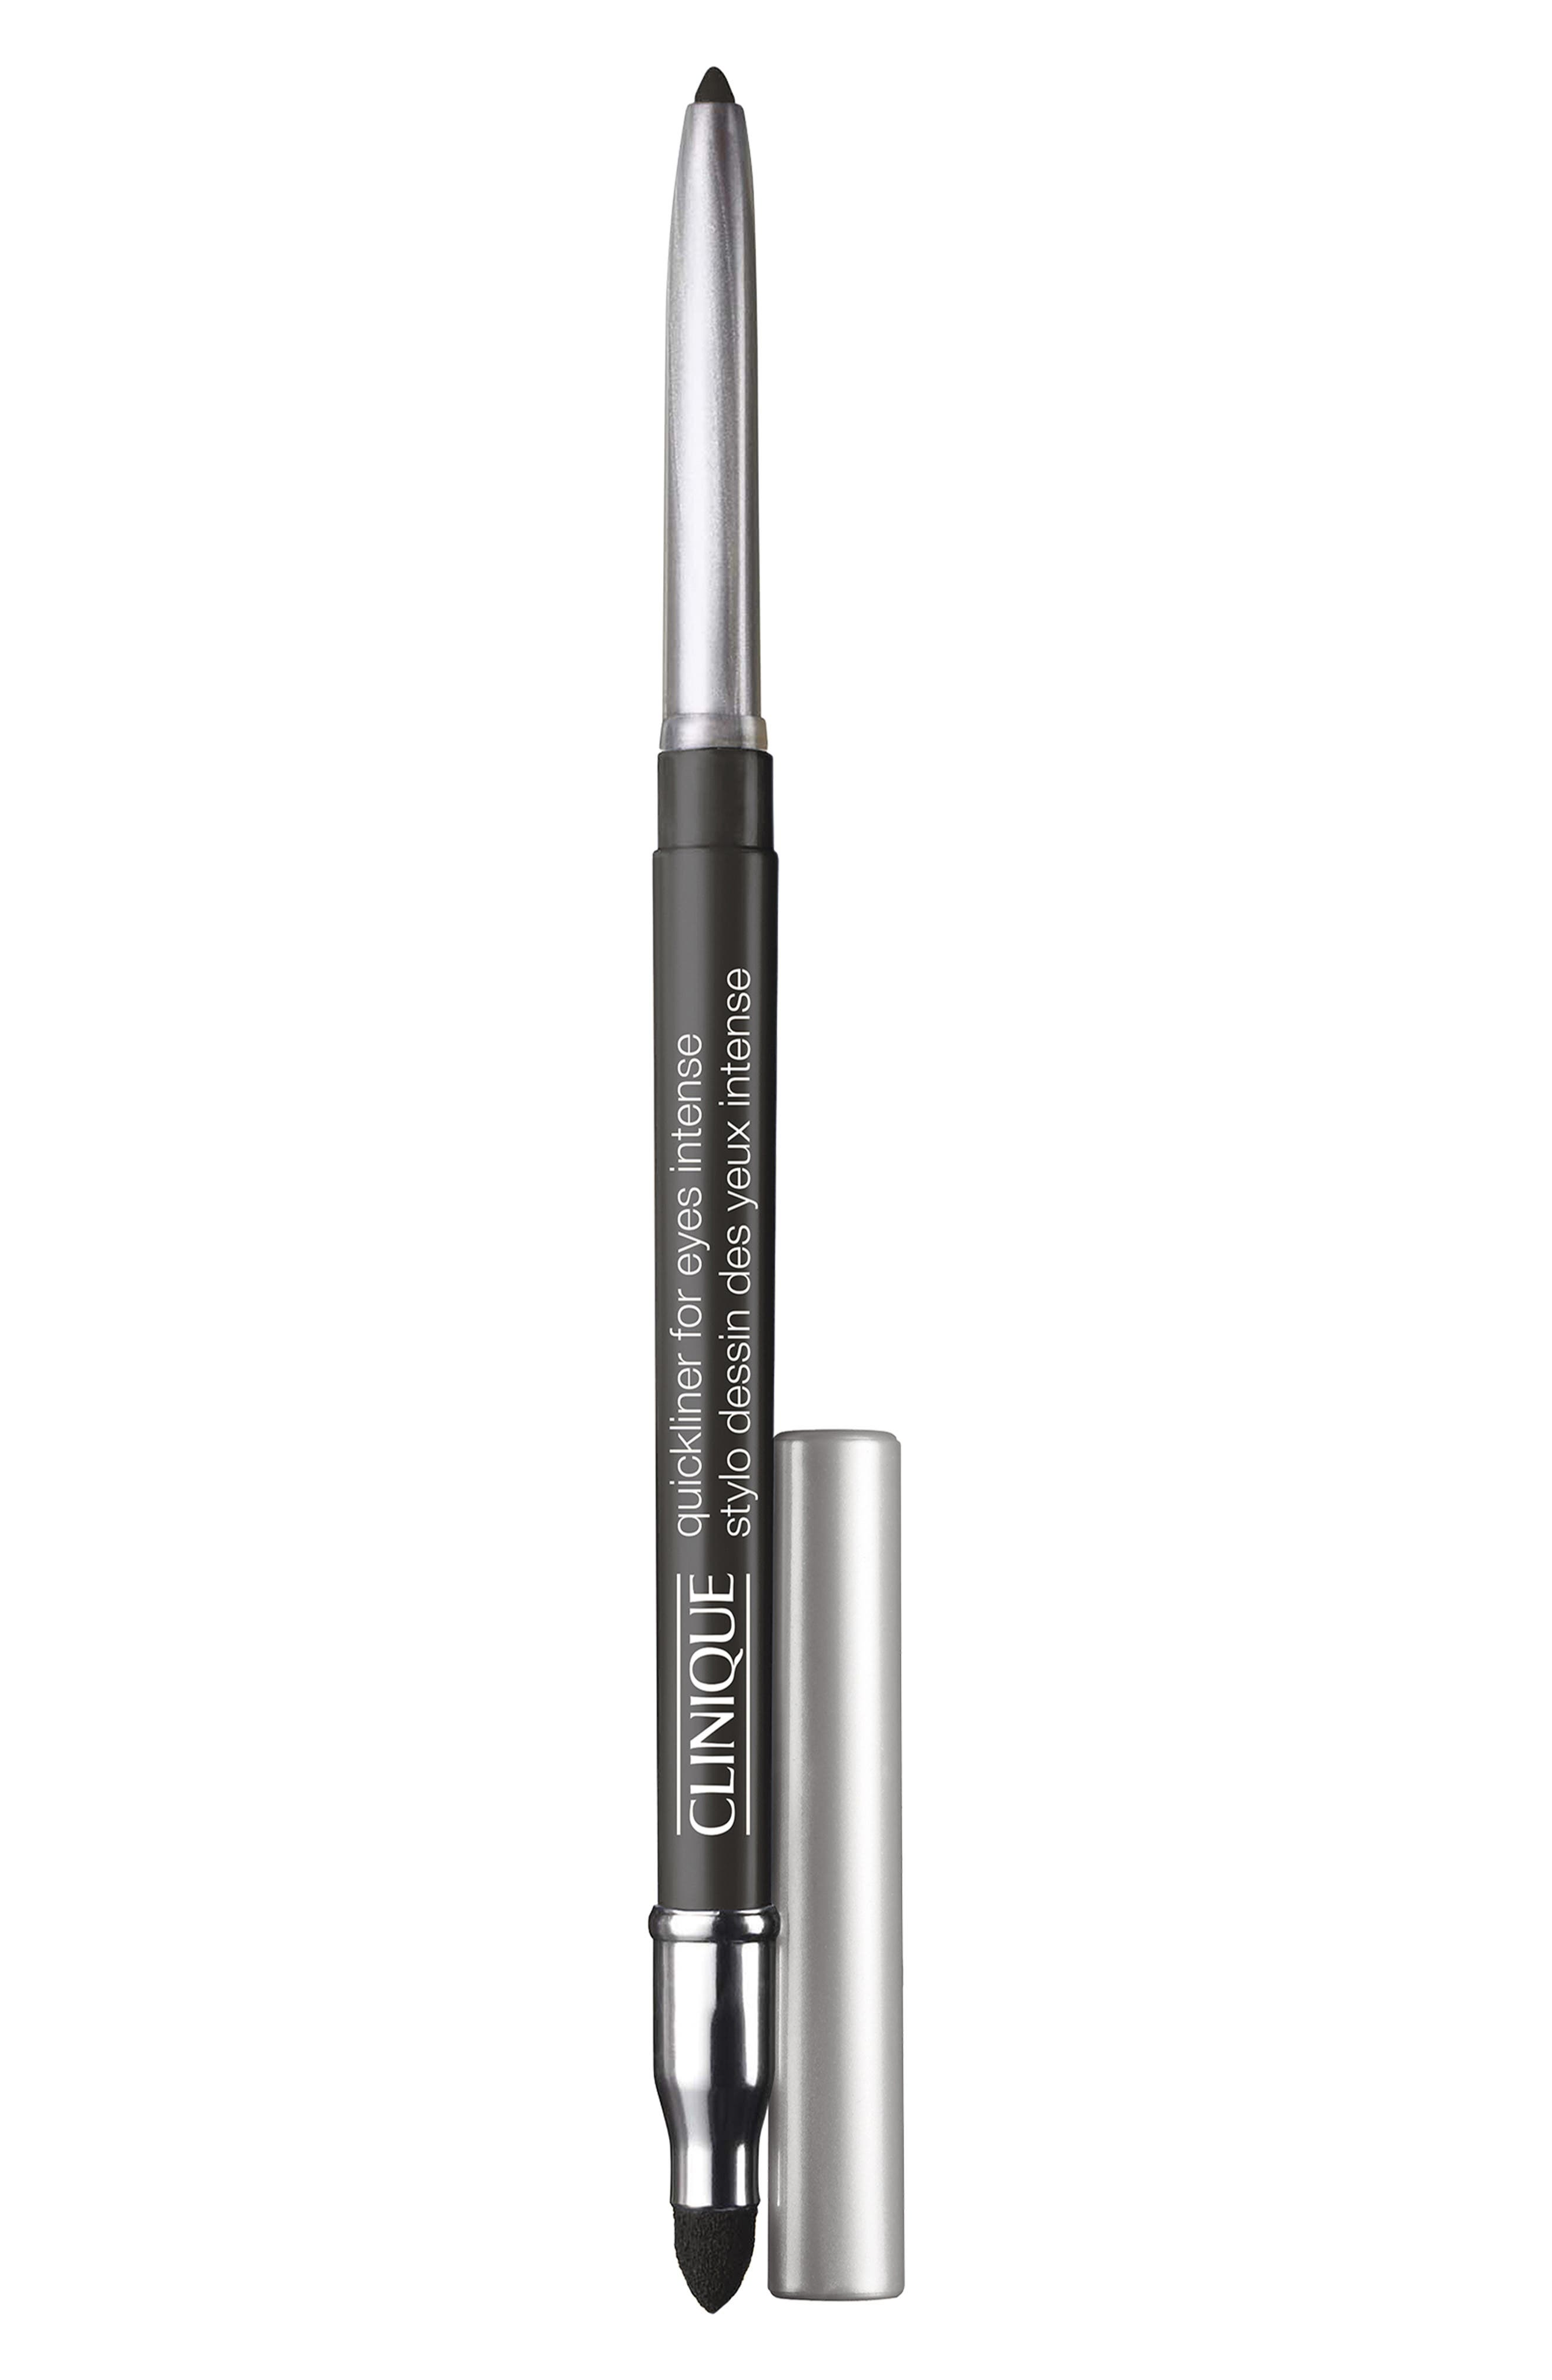 Quickliner for Eyes Intense Eyeliner Pencil,                         Main,                         color, INTENSE CHARCOAL